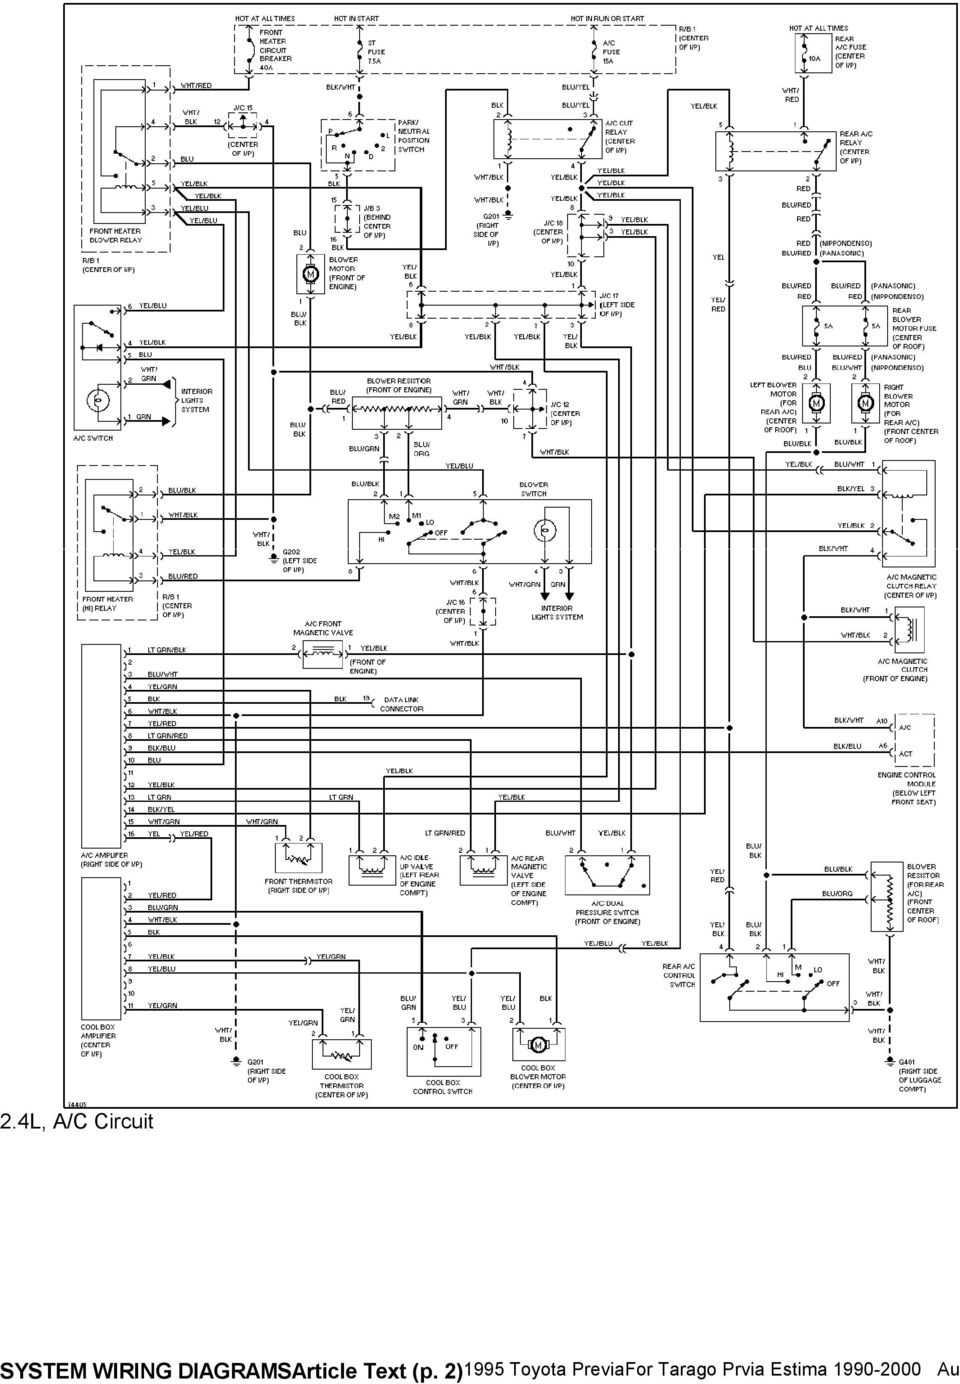 Fabulous 1995 System Wiring Diagrams Toyota Previa 2 4L Sc A C Circuit Wiring Cloud Orsalboapumohammedshrineorg